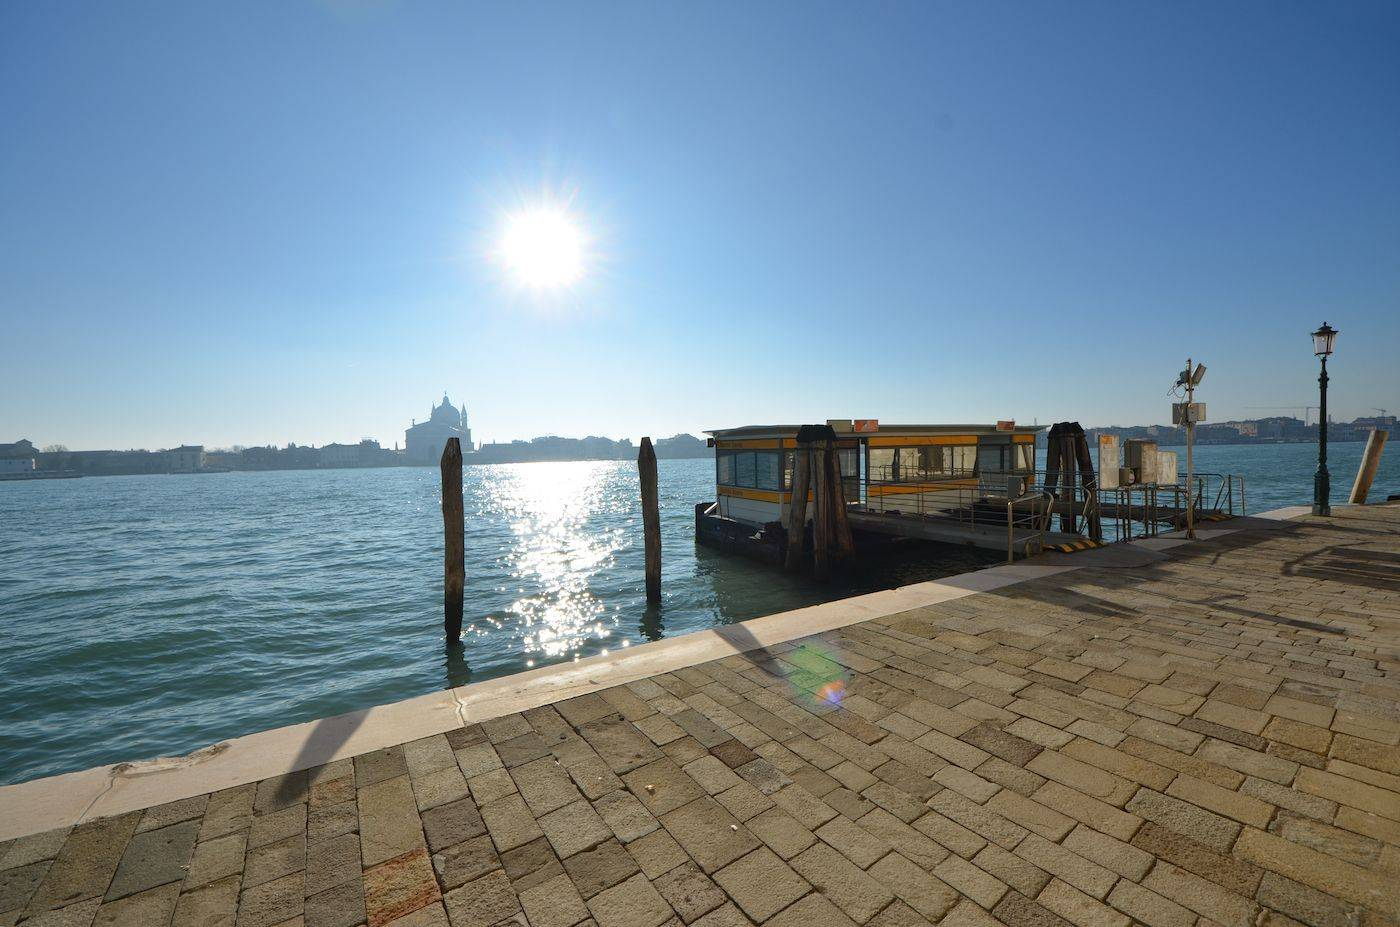 view from the Palladio apartment on the Giudecca Canal